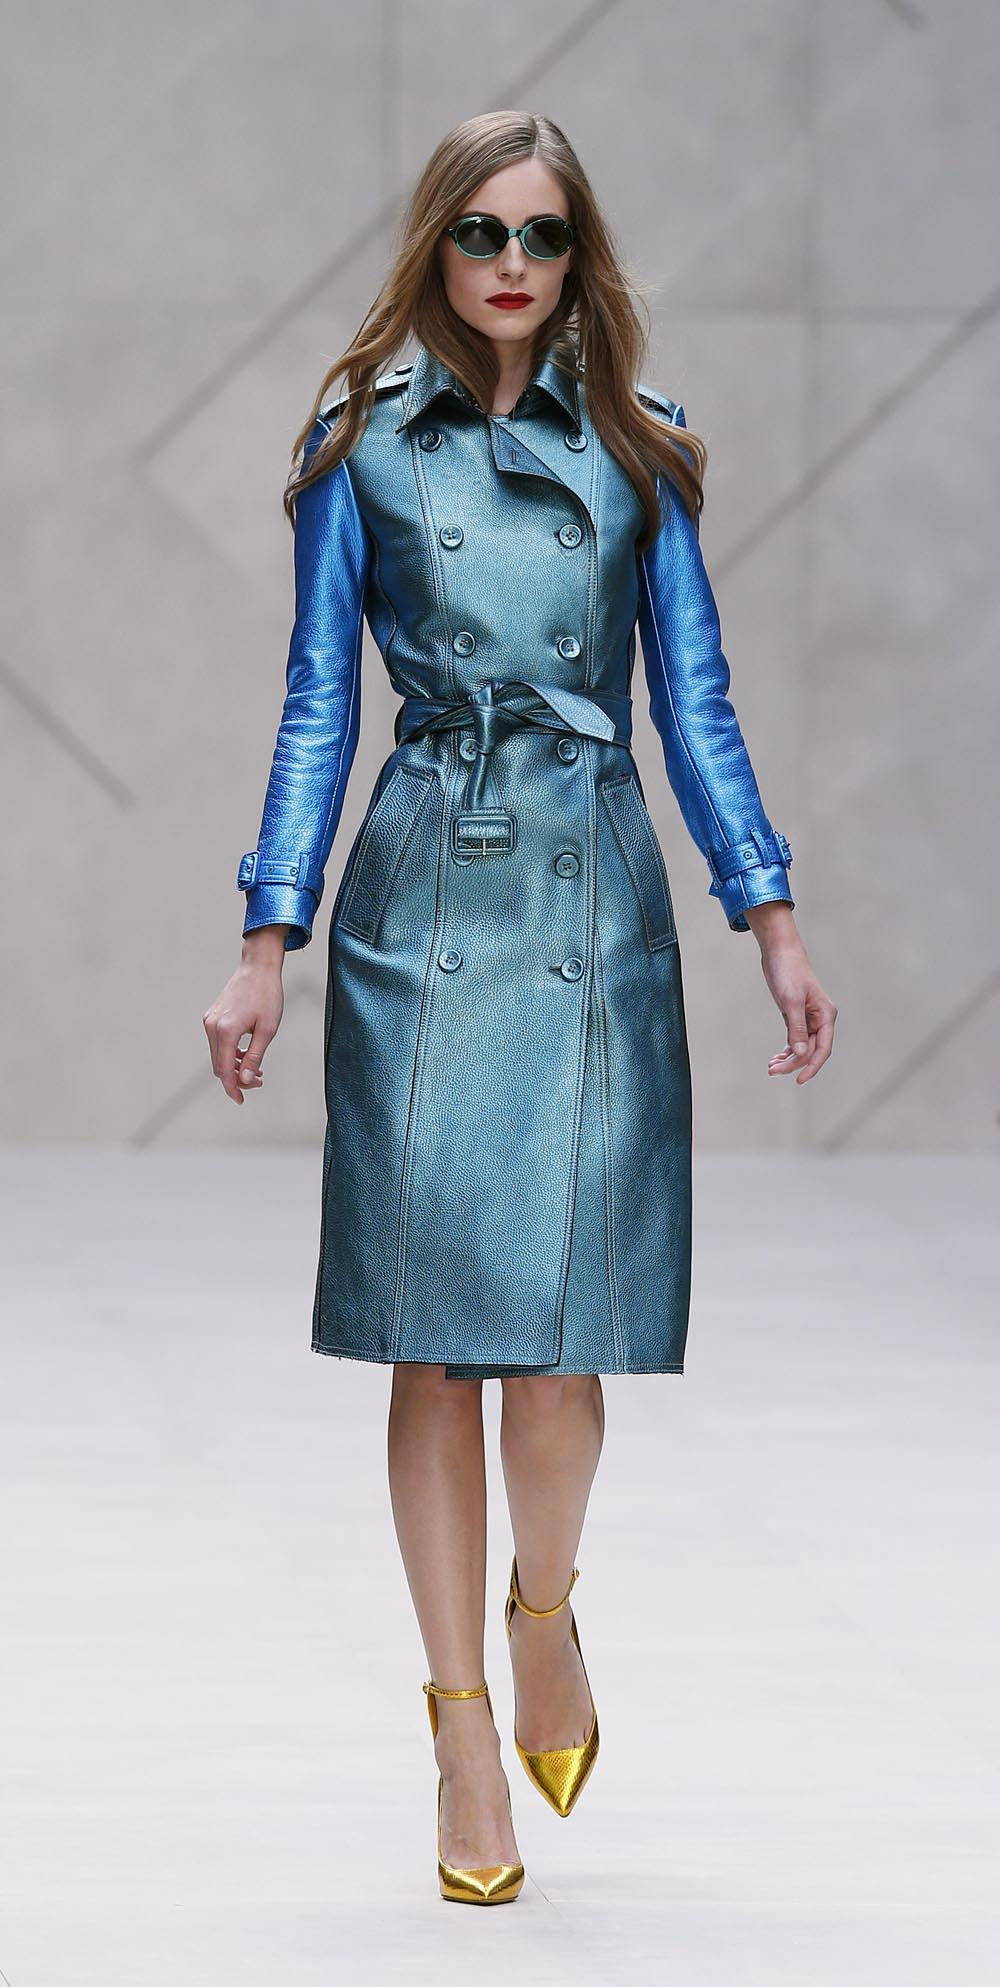 burberry metallic coat How To Make Your Waist Look Smaller: 10 Easy Tricks That Really Work